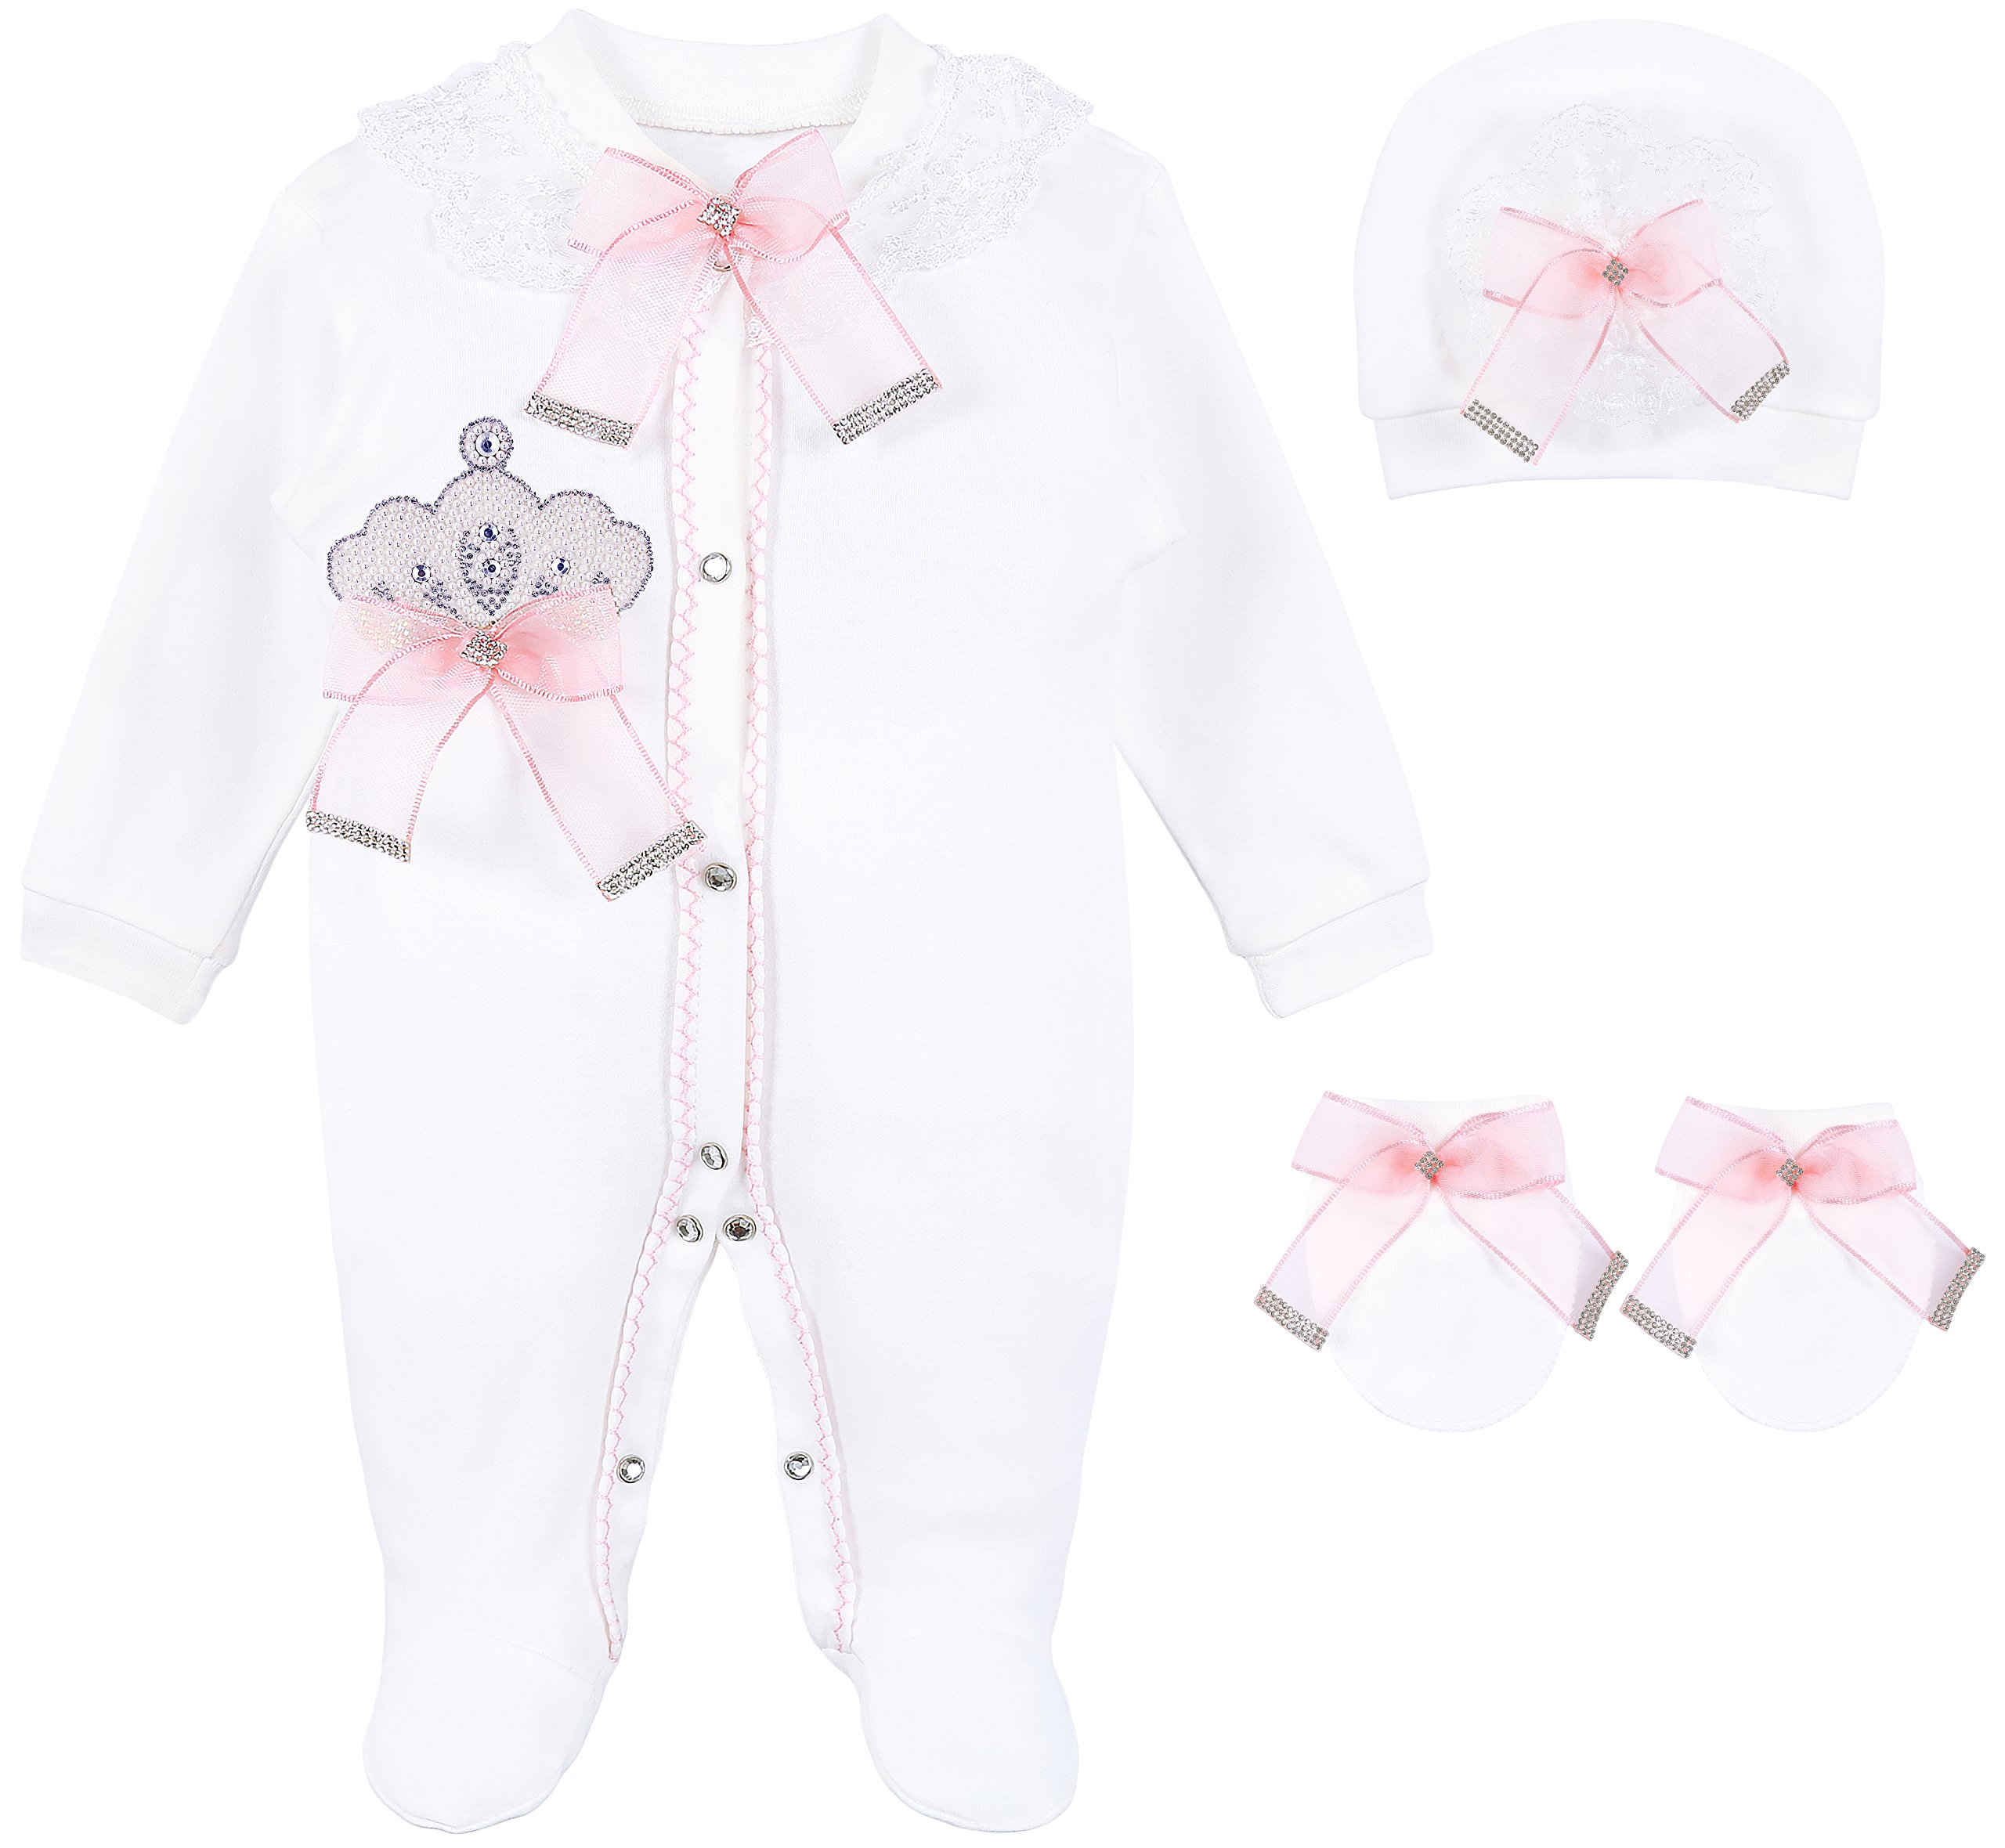 819ca25772a4 Best Rated in Baby Girls' Layette Sets & Helpful Customer Reviews ...